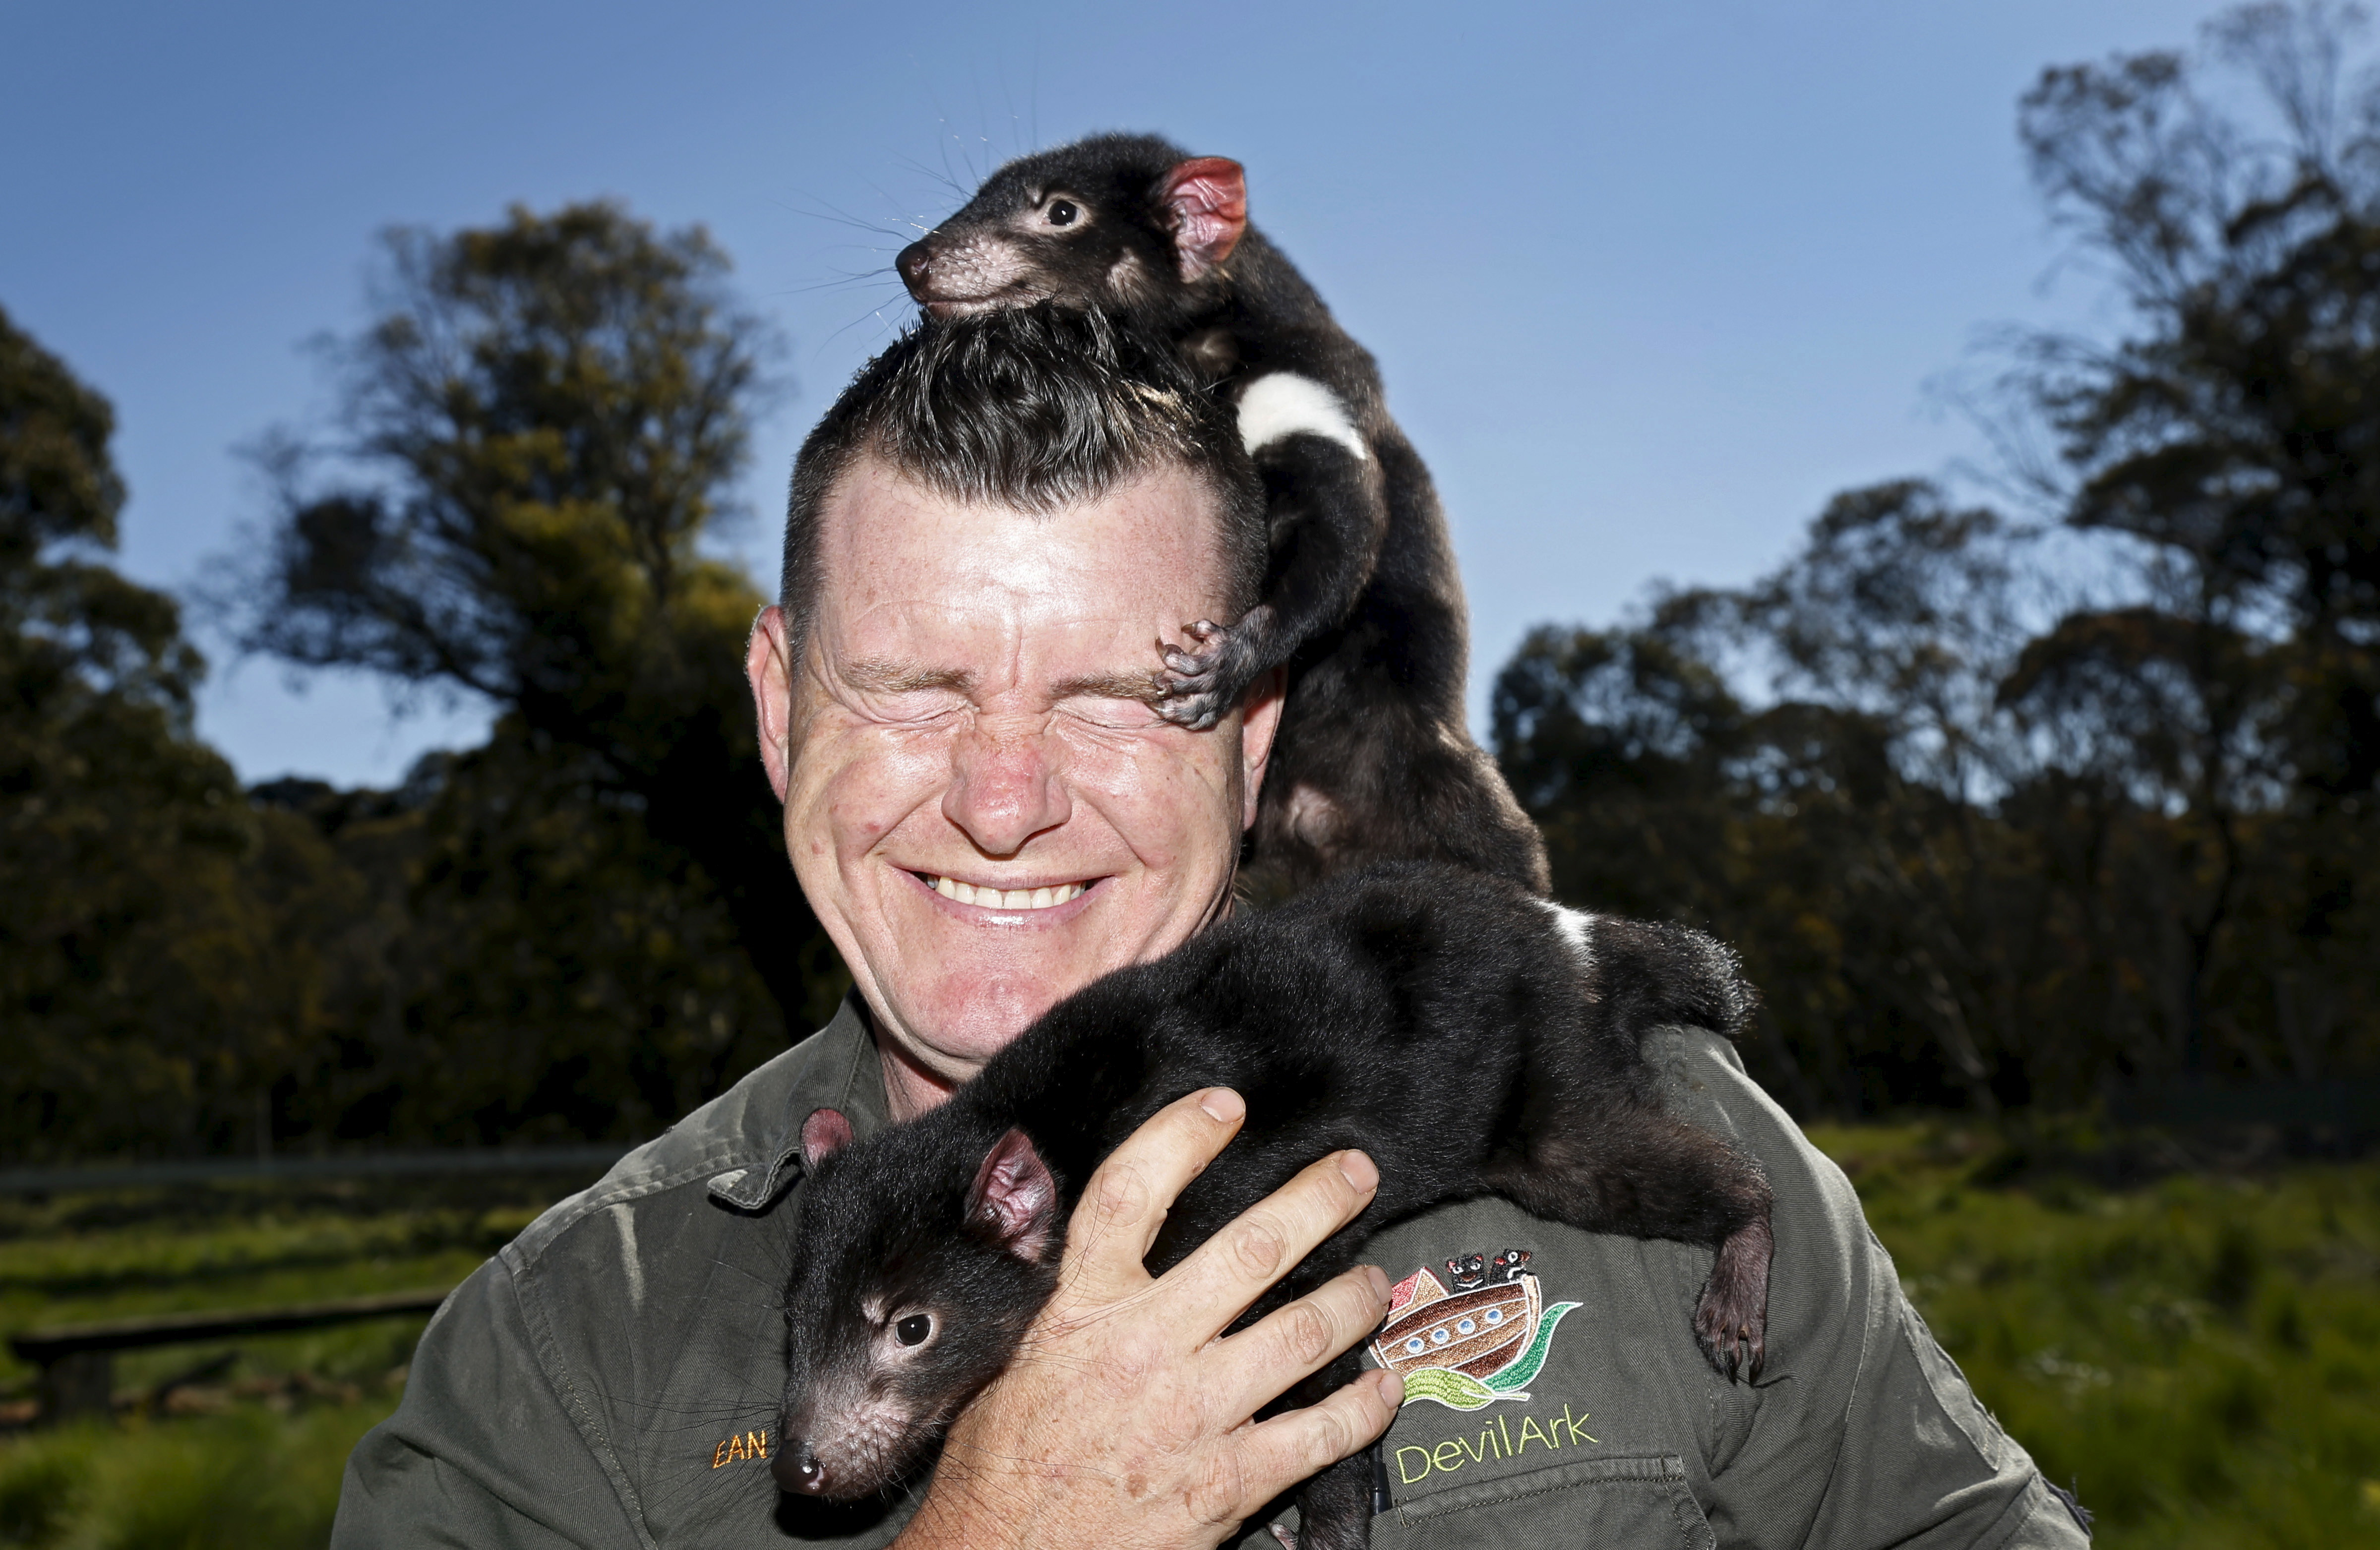 A man stand with a big smile on his face as two Tasmanian Devils climb over him